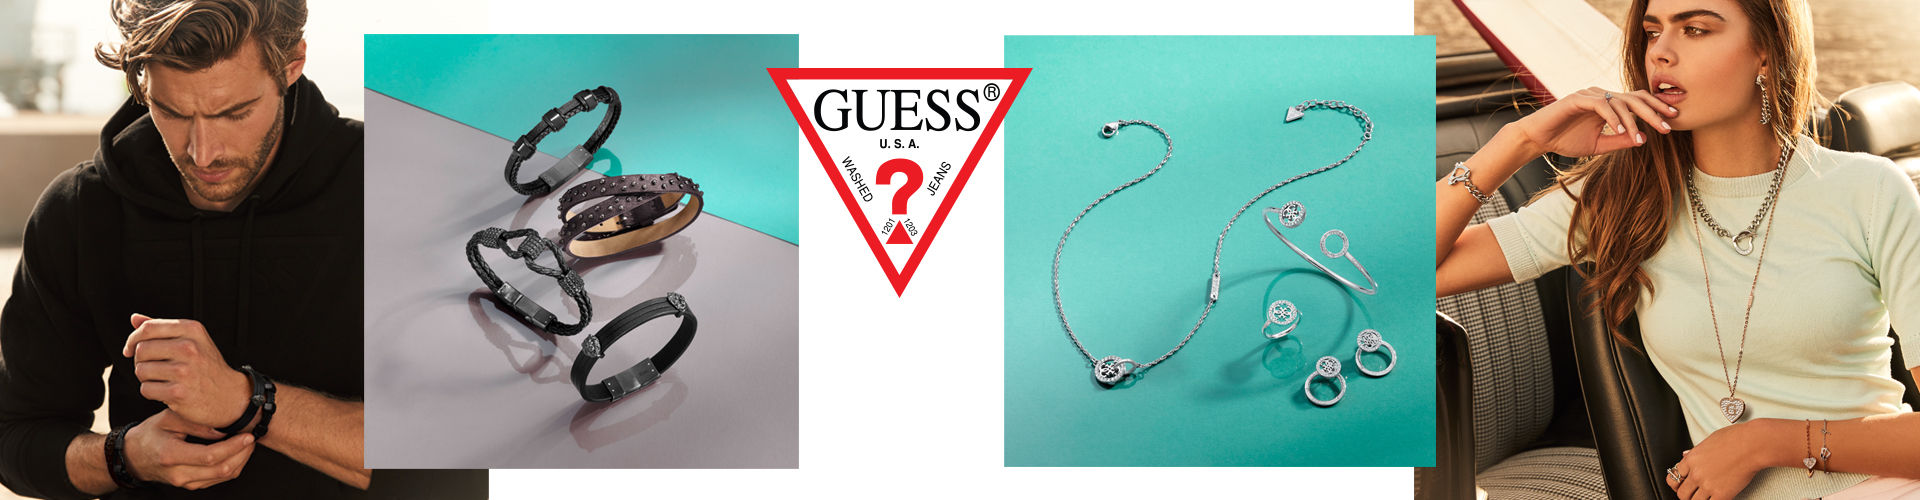 guess jewellery slide 1920x500